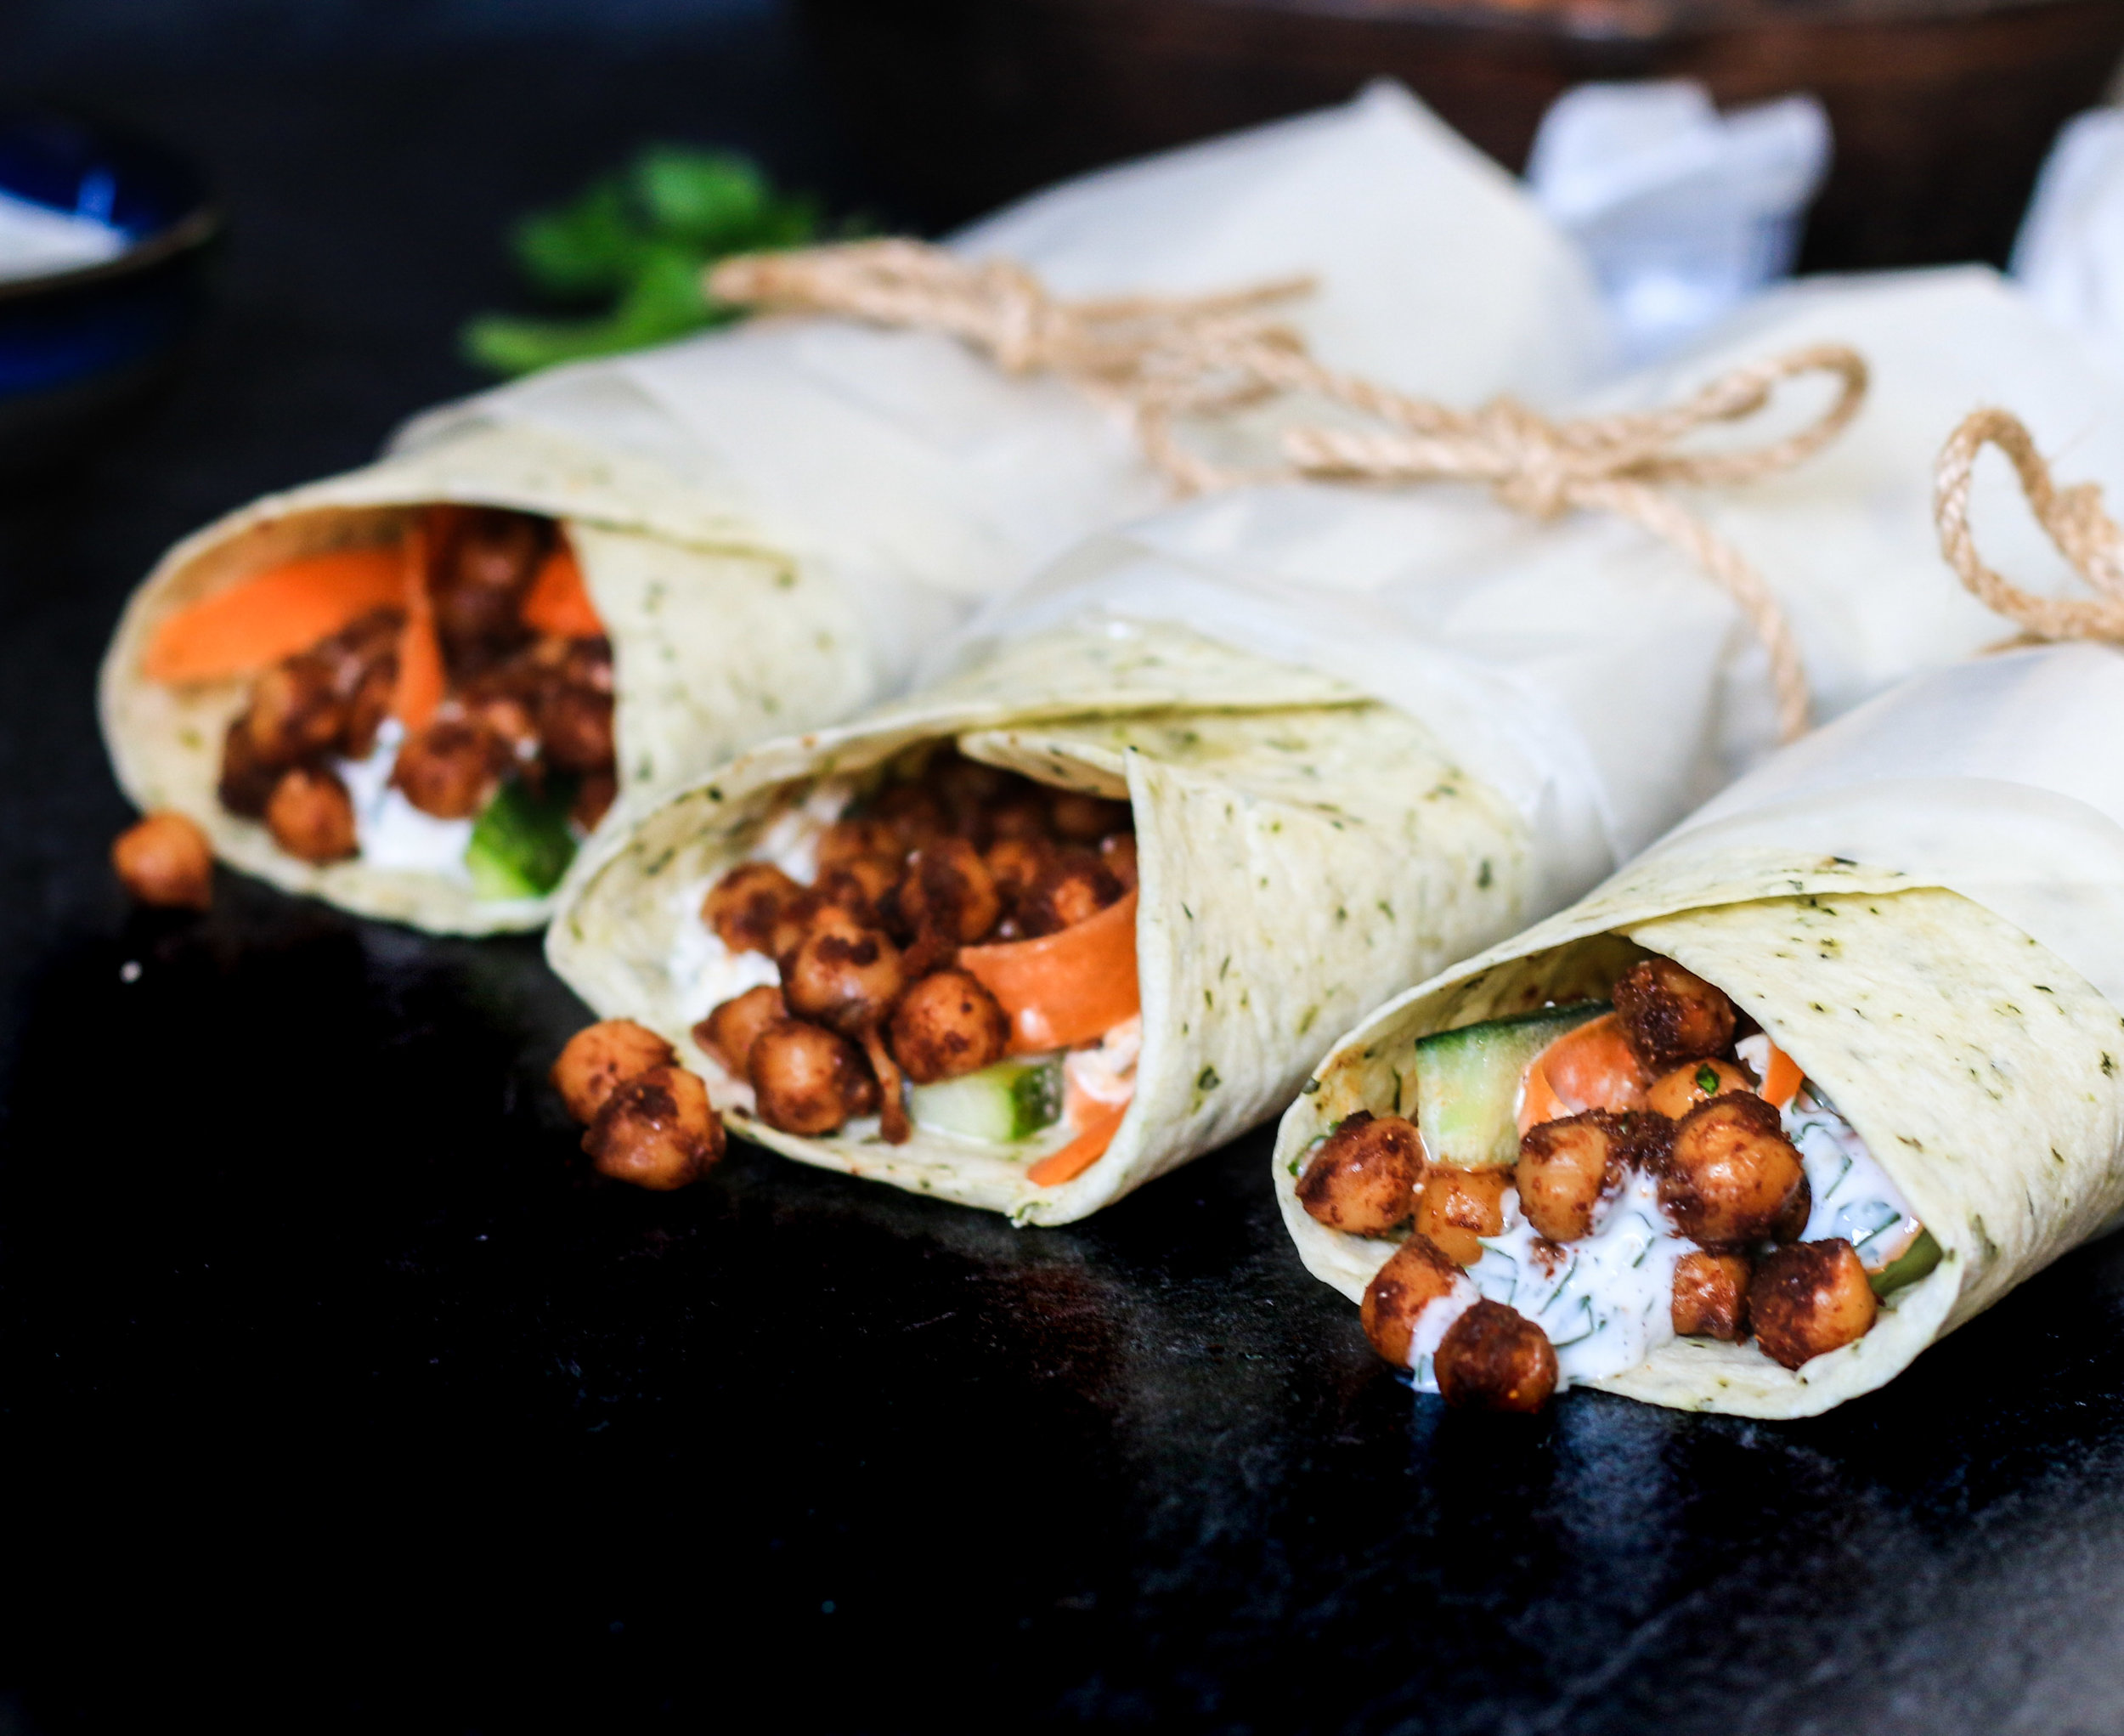 Spiced+Chickpea+Wraps-1.jpg